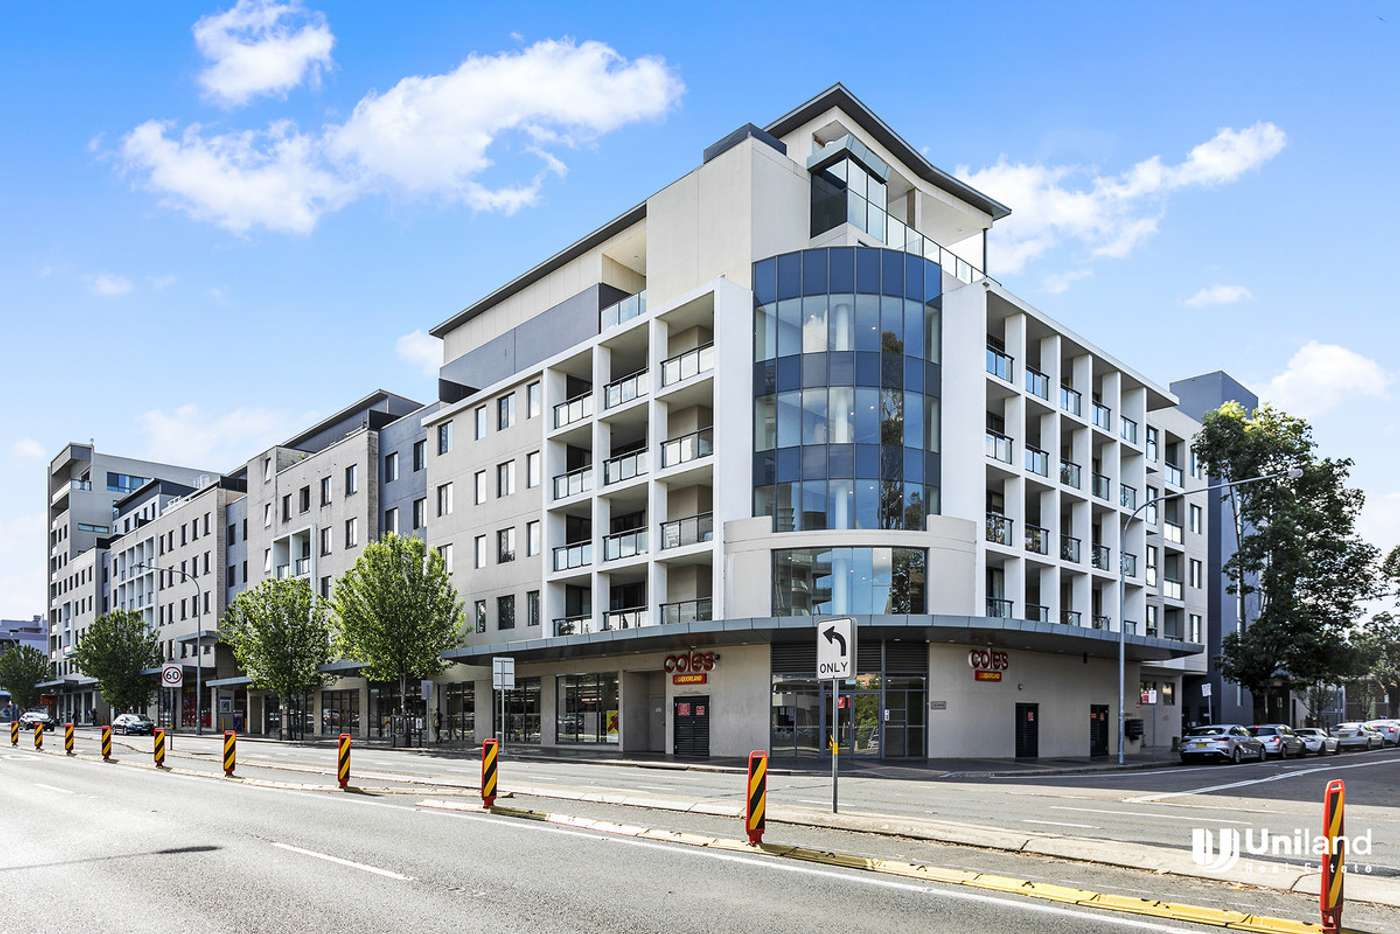 Main view of Homely apartment listing, 62/20 Victoria Road, Parramatta NSW 2150